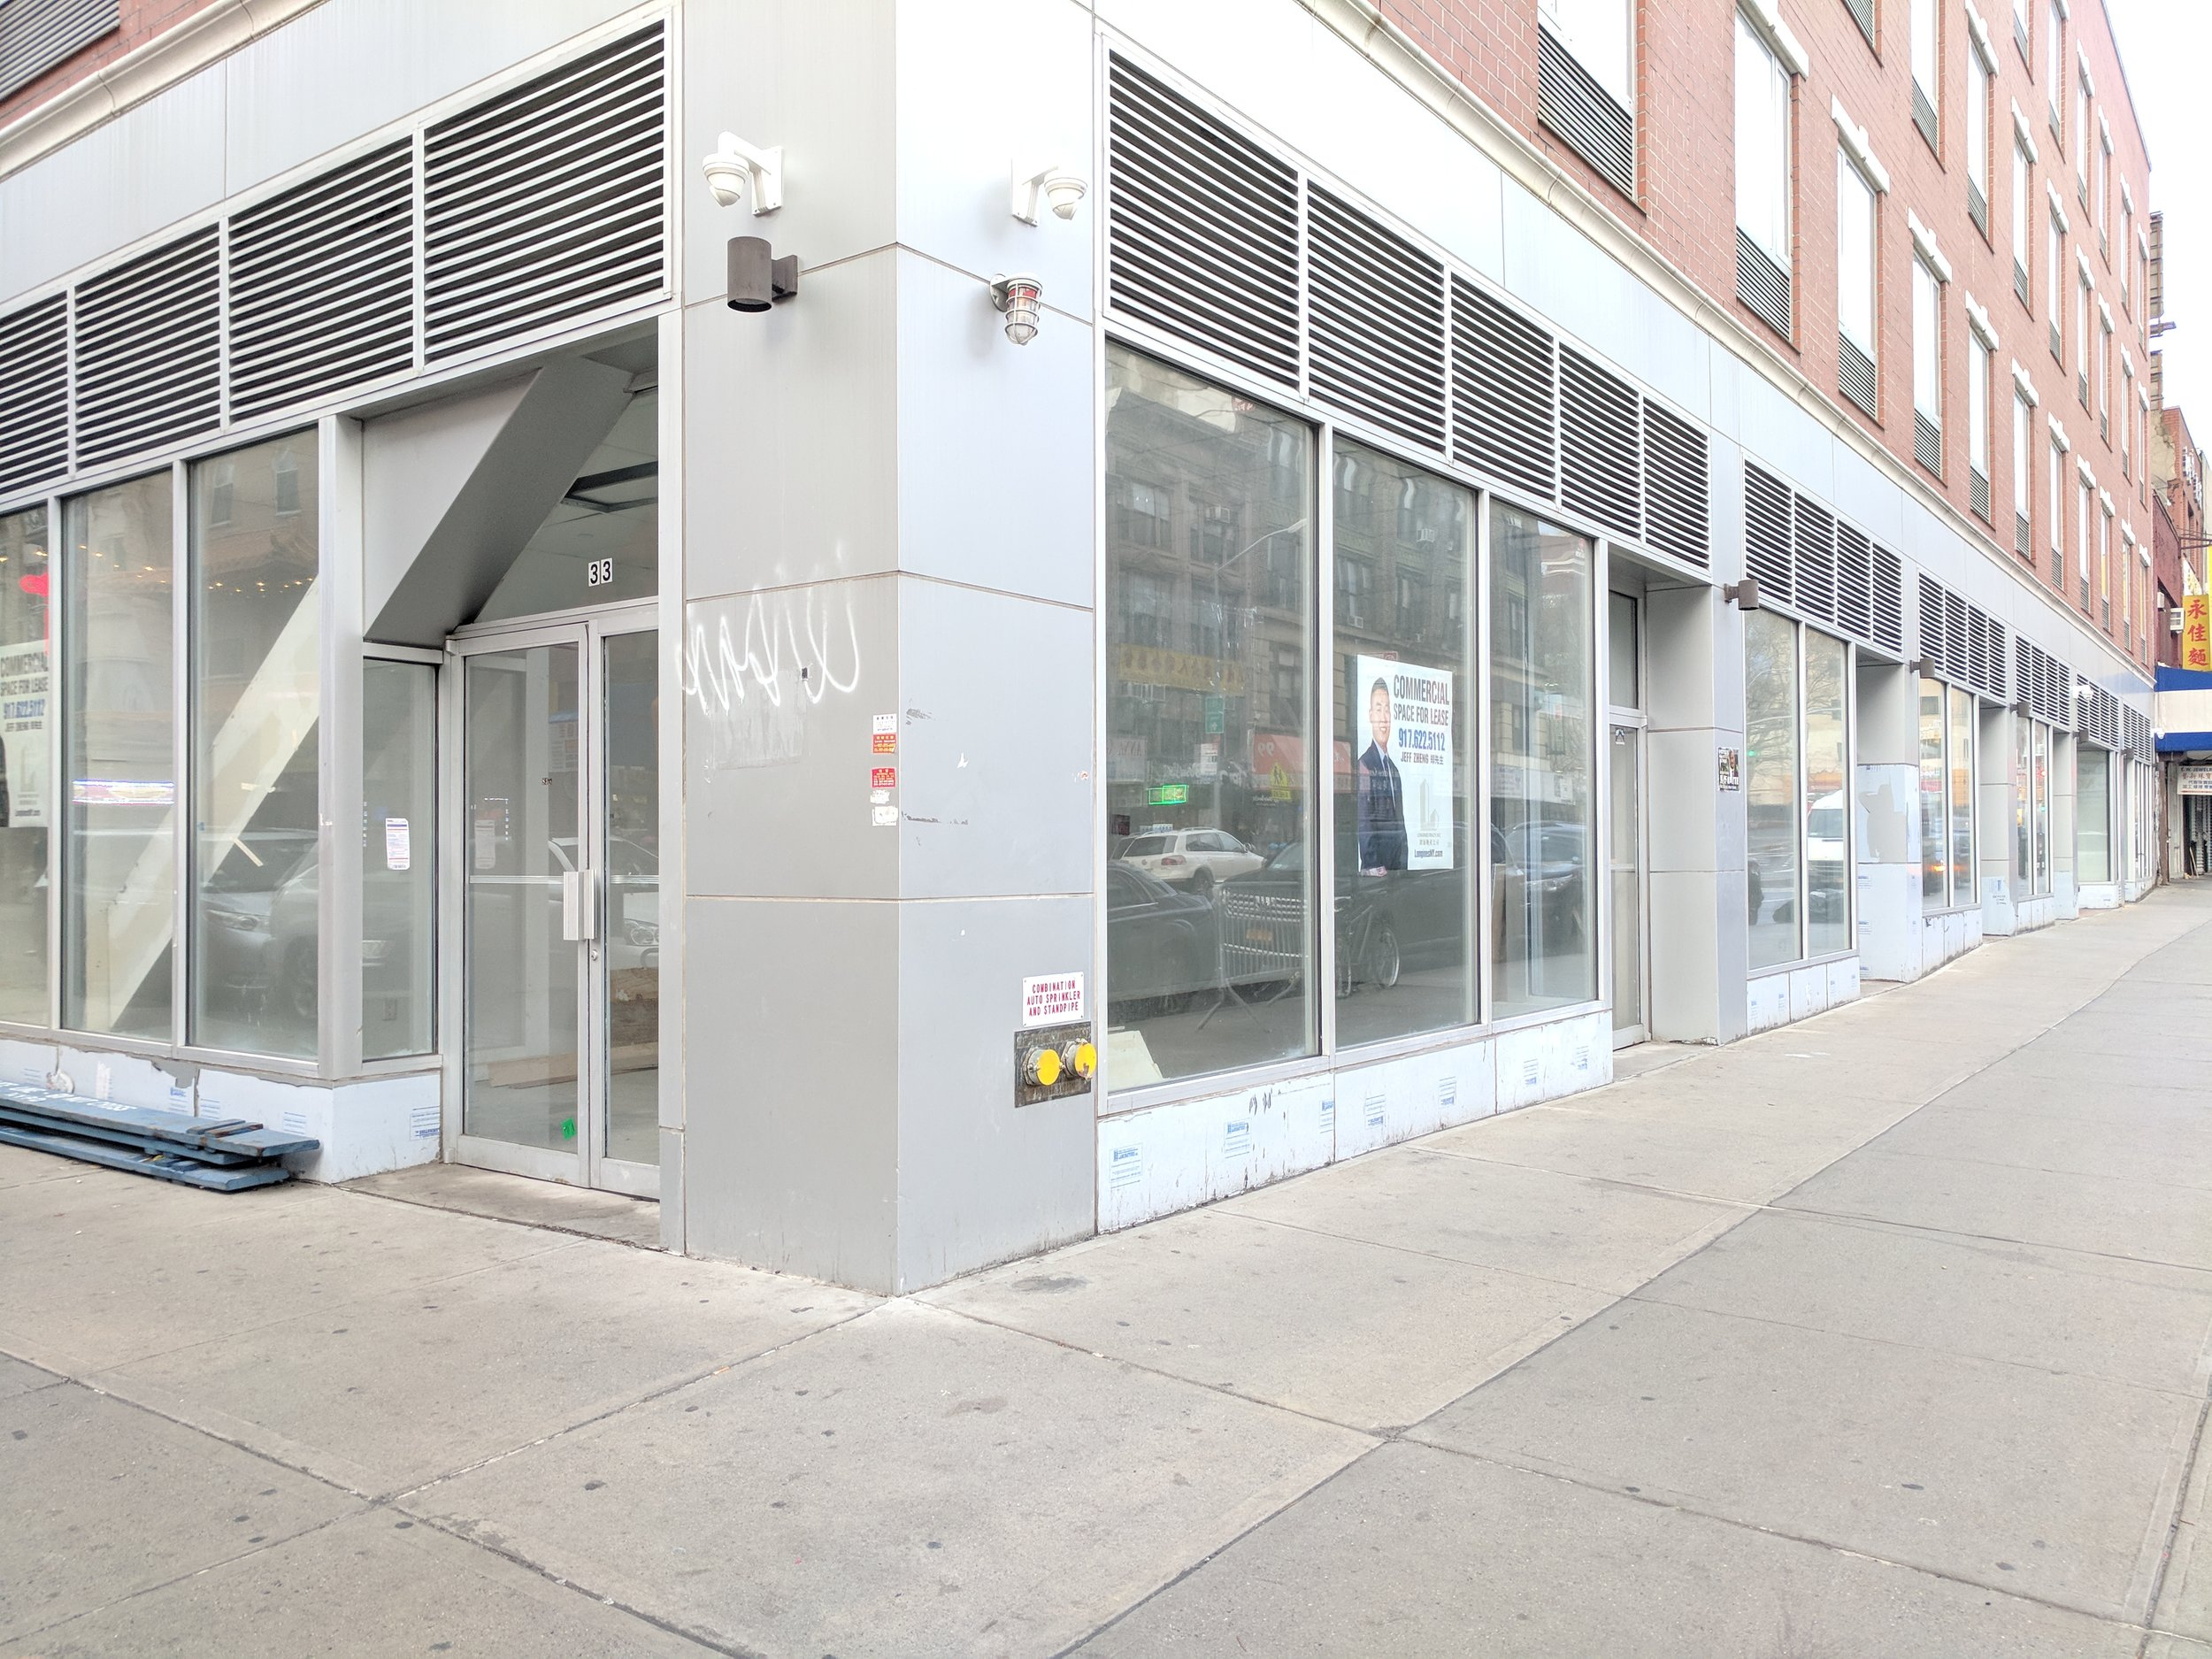 86 cANAL ST -